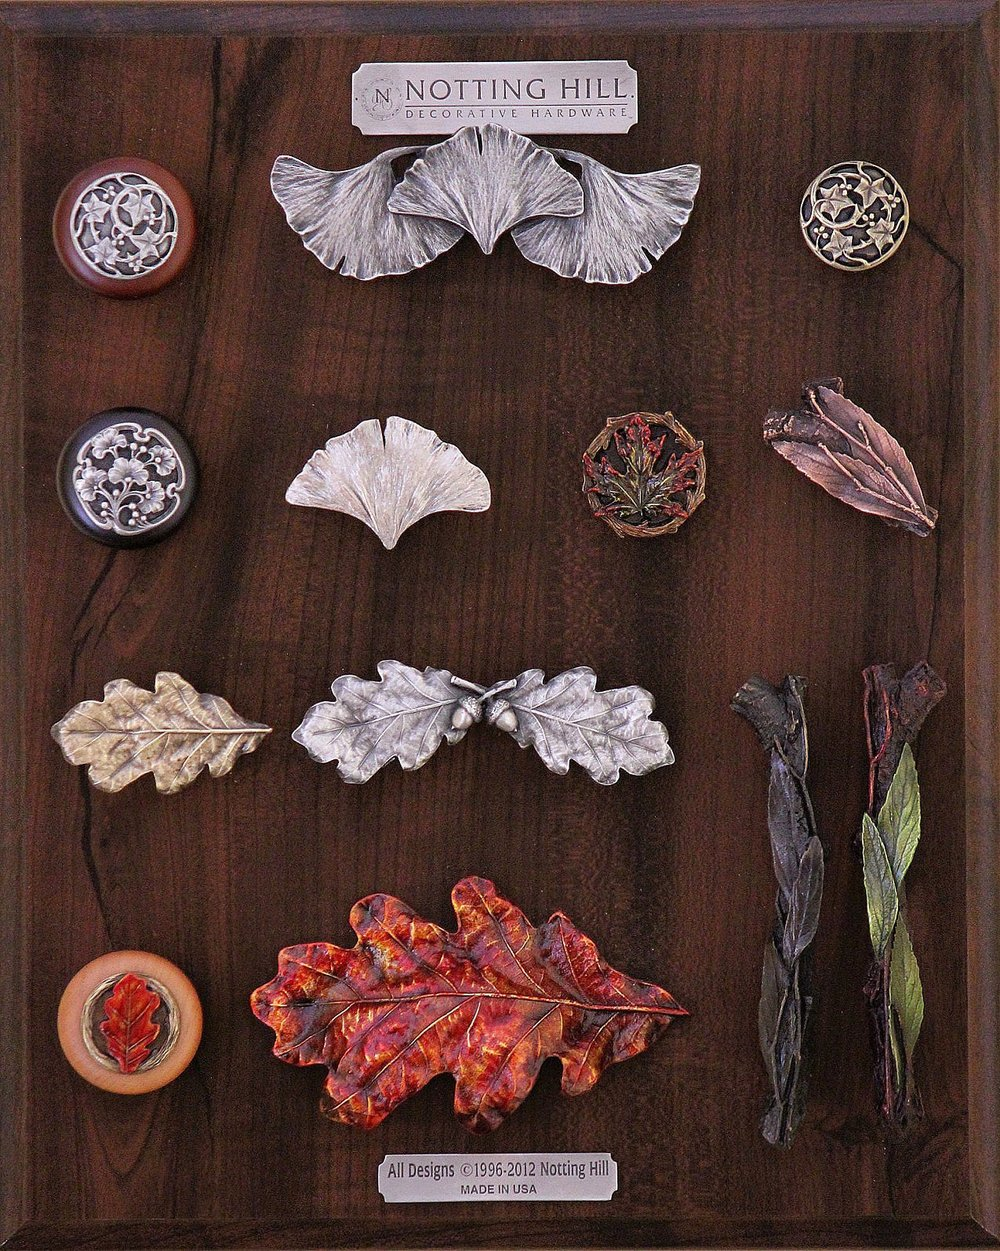 Ivy with Berries Wood Knob, Ginkgo Leaf Pull, Ivy with Berries Knob, Ginkgo Berry Wood Knob, Ginkgo Leaf Knob, Maple Knob, Leafy Twig Knob, Oak Leaf Knob, Pull, Wood Knob, Bin Pull; Leafy Branch Pulls (L & R)